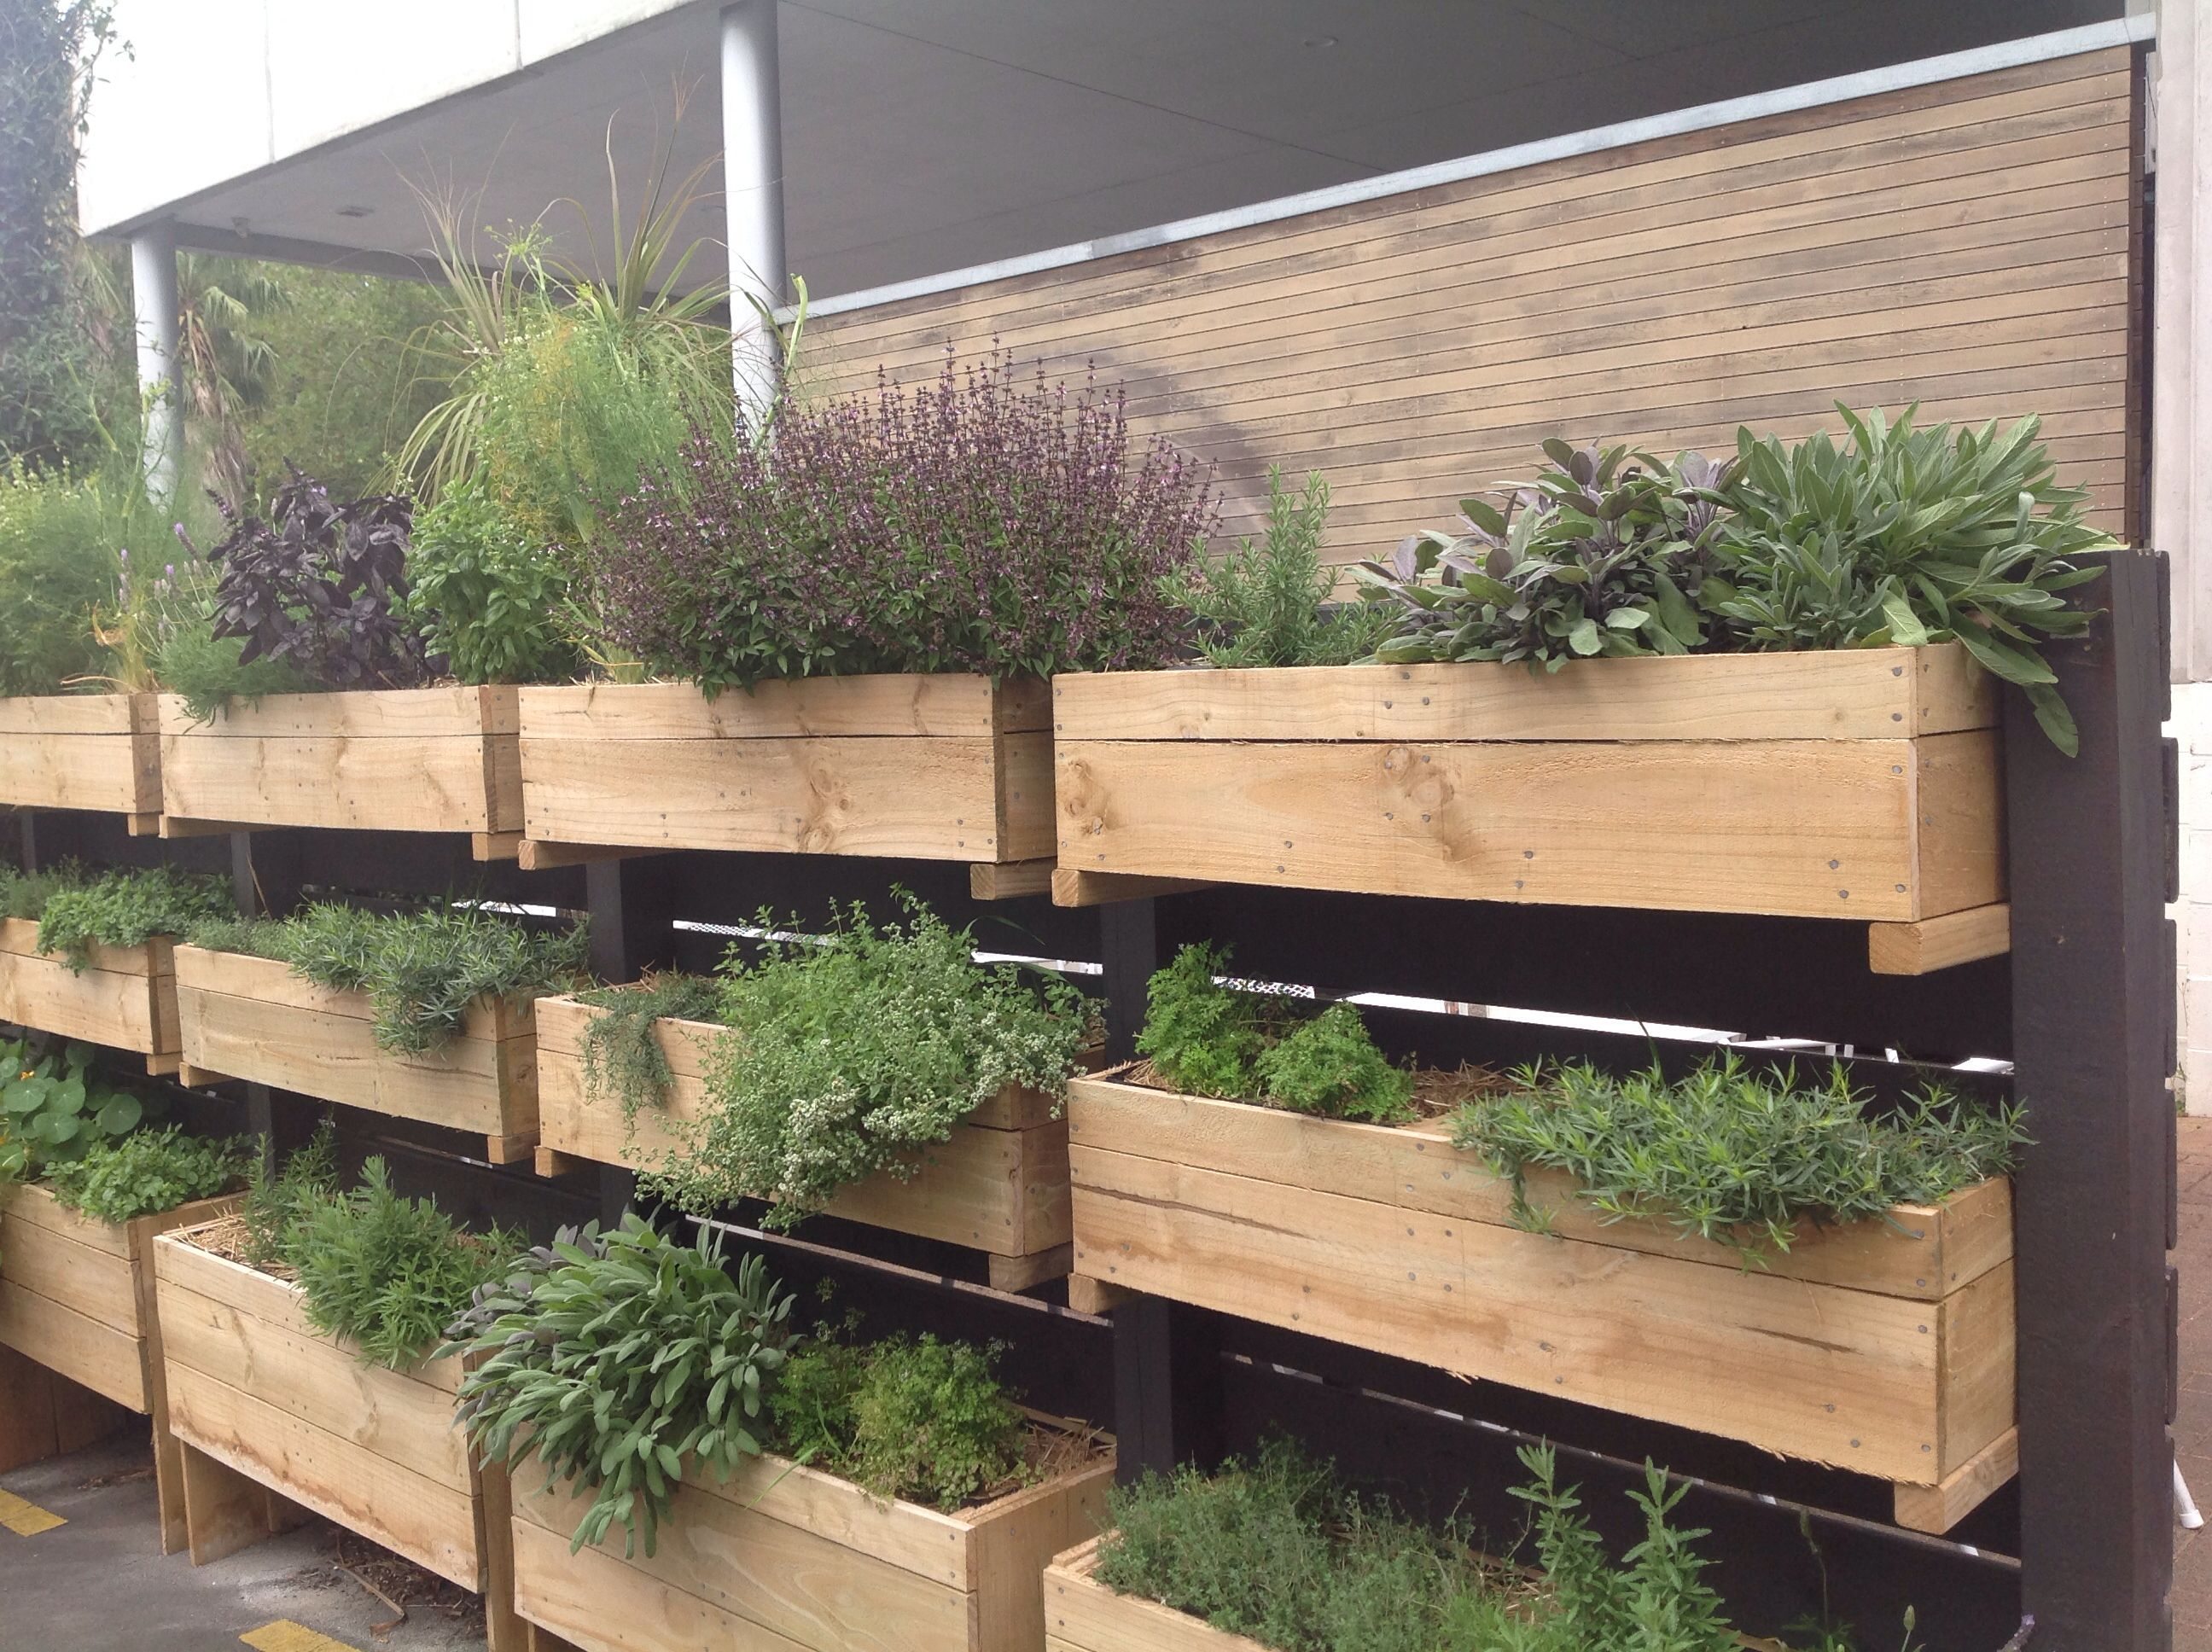 single color planter boxes Google Search Indoor herb